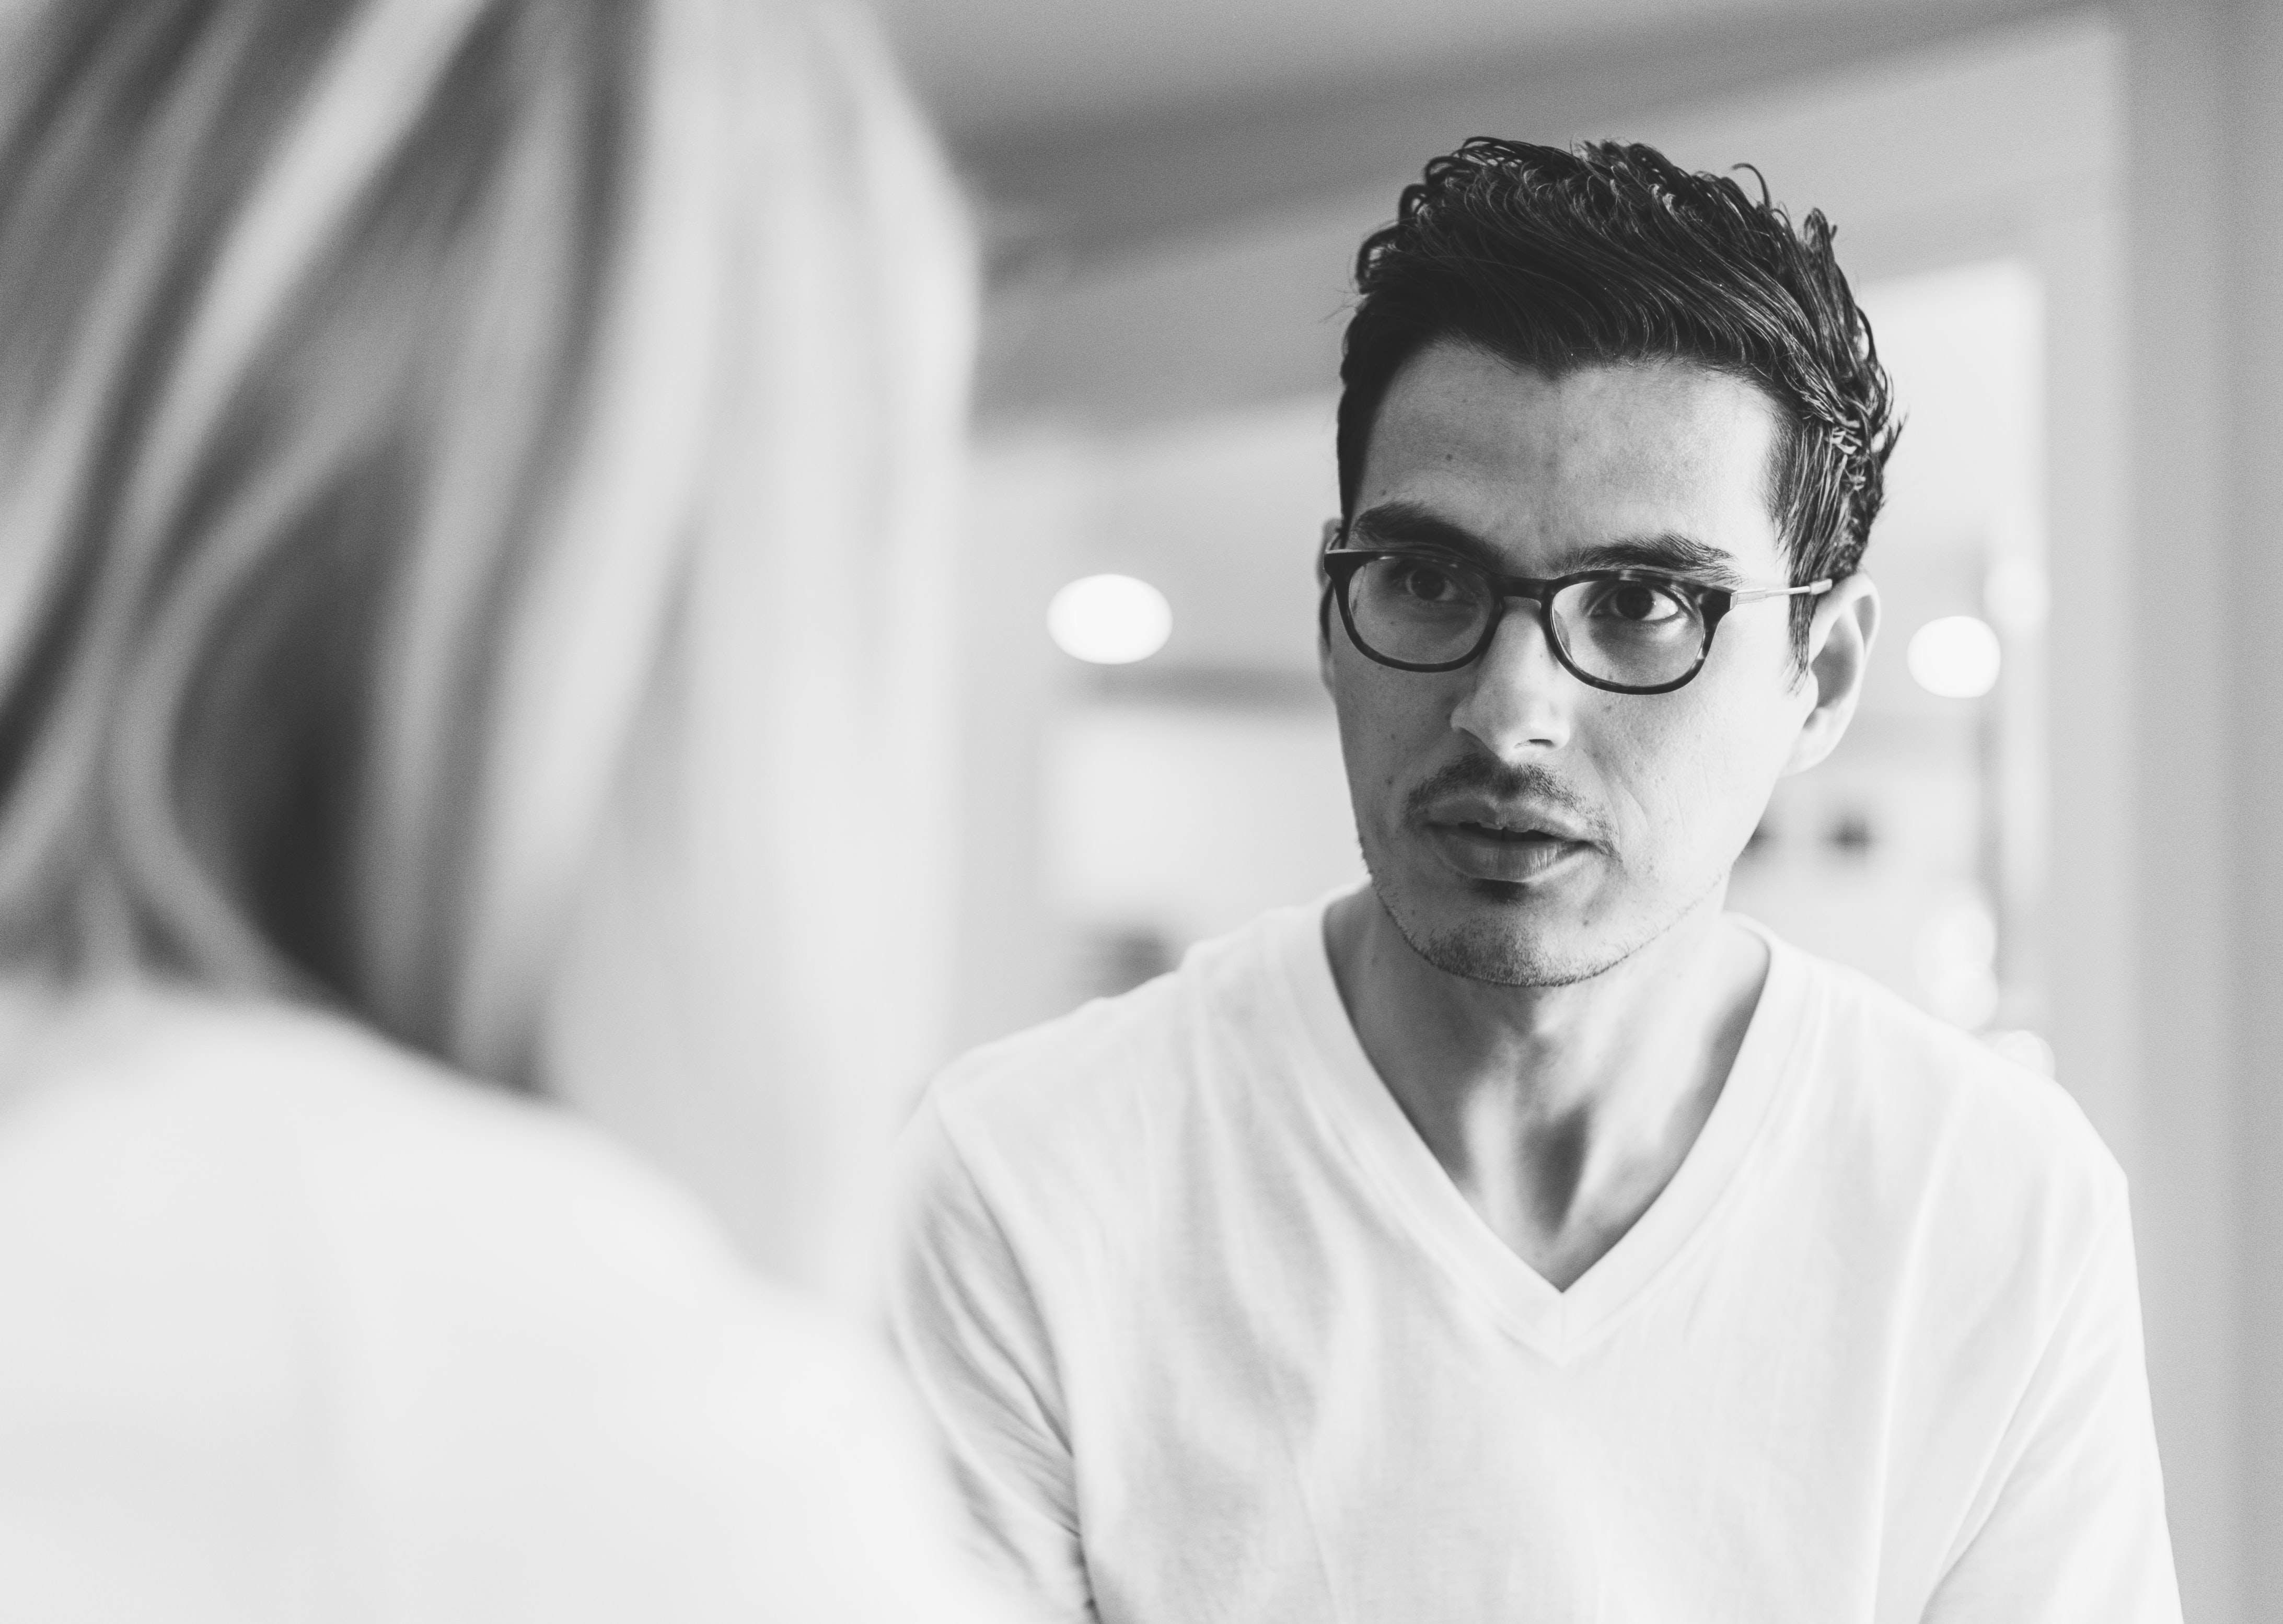 grayscale photography of man wearing eyeglasses in front of woman